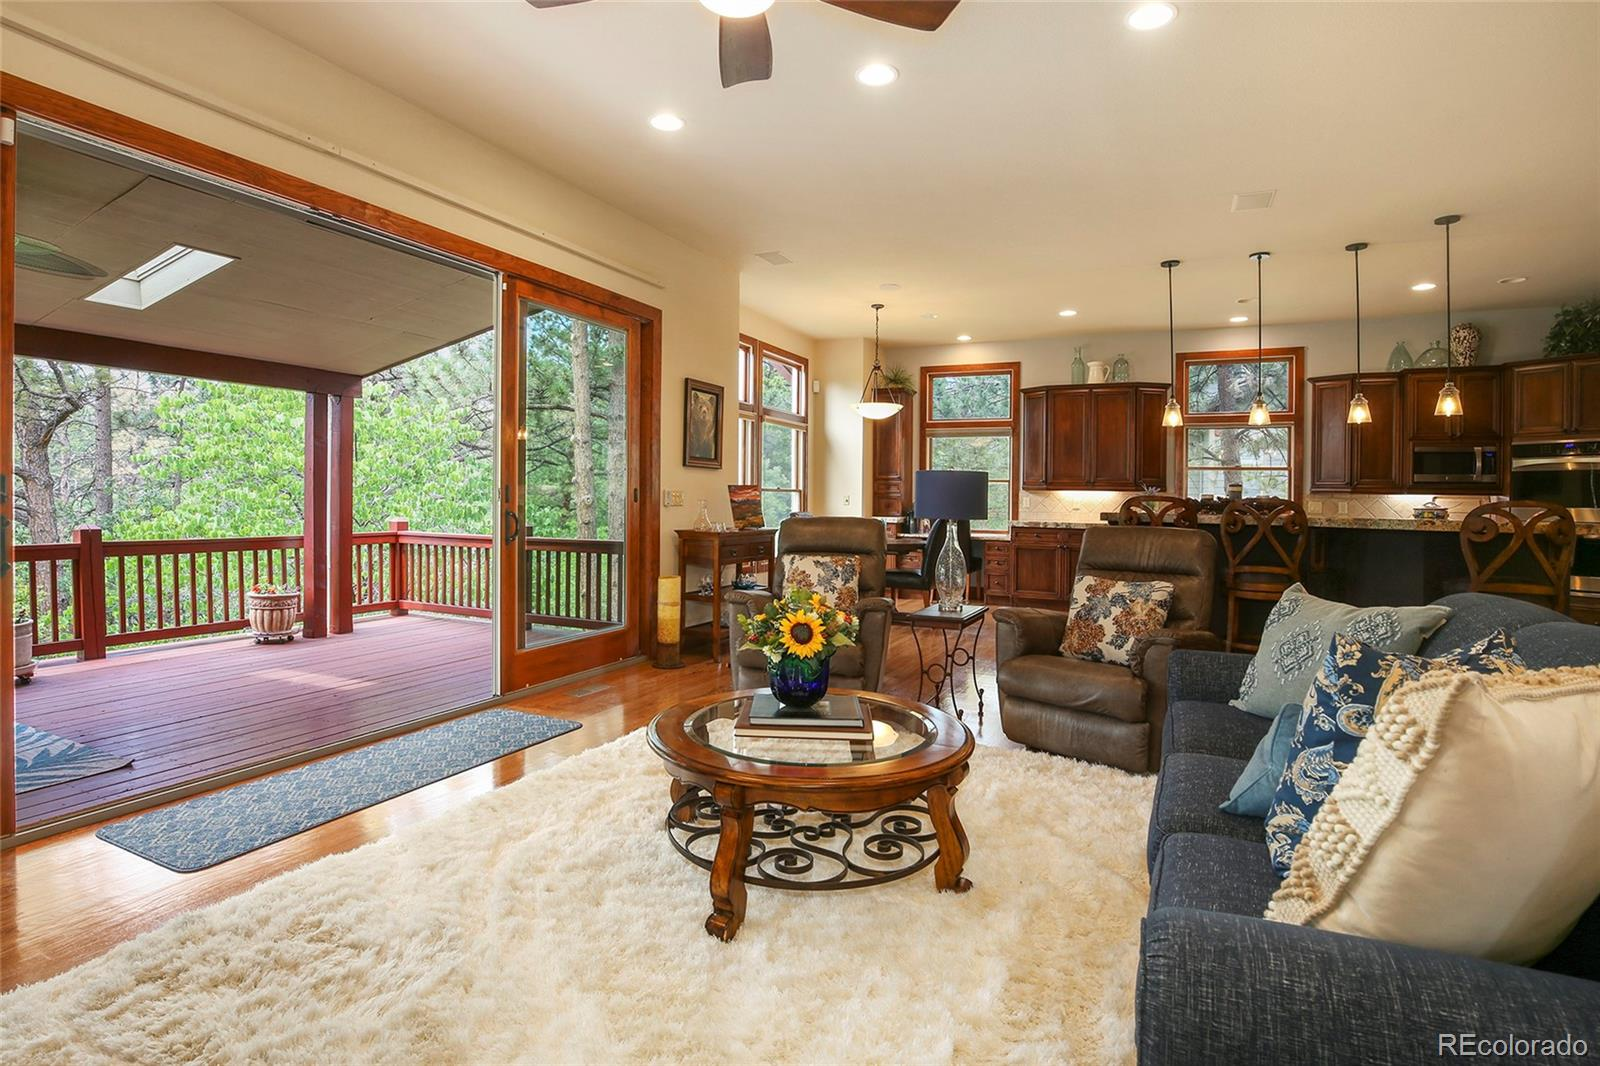 MLS# 8150320 - 14 - 1198 Forest Trails Drive, Castle Pines, CO 80108